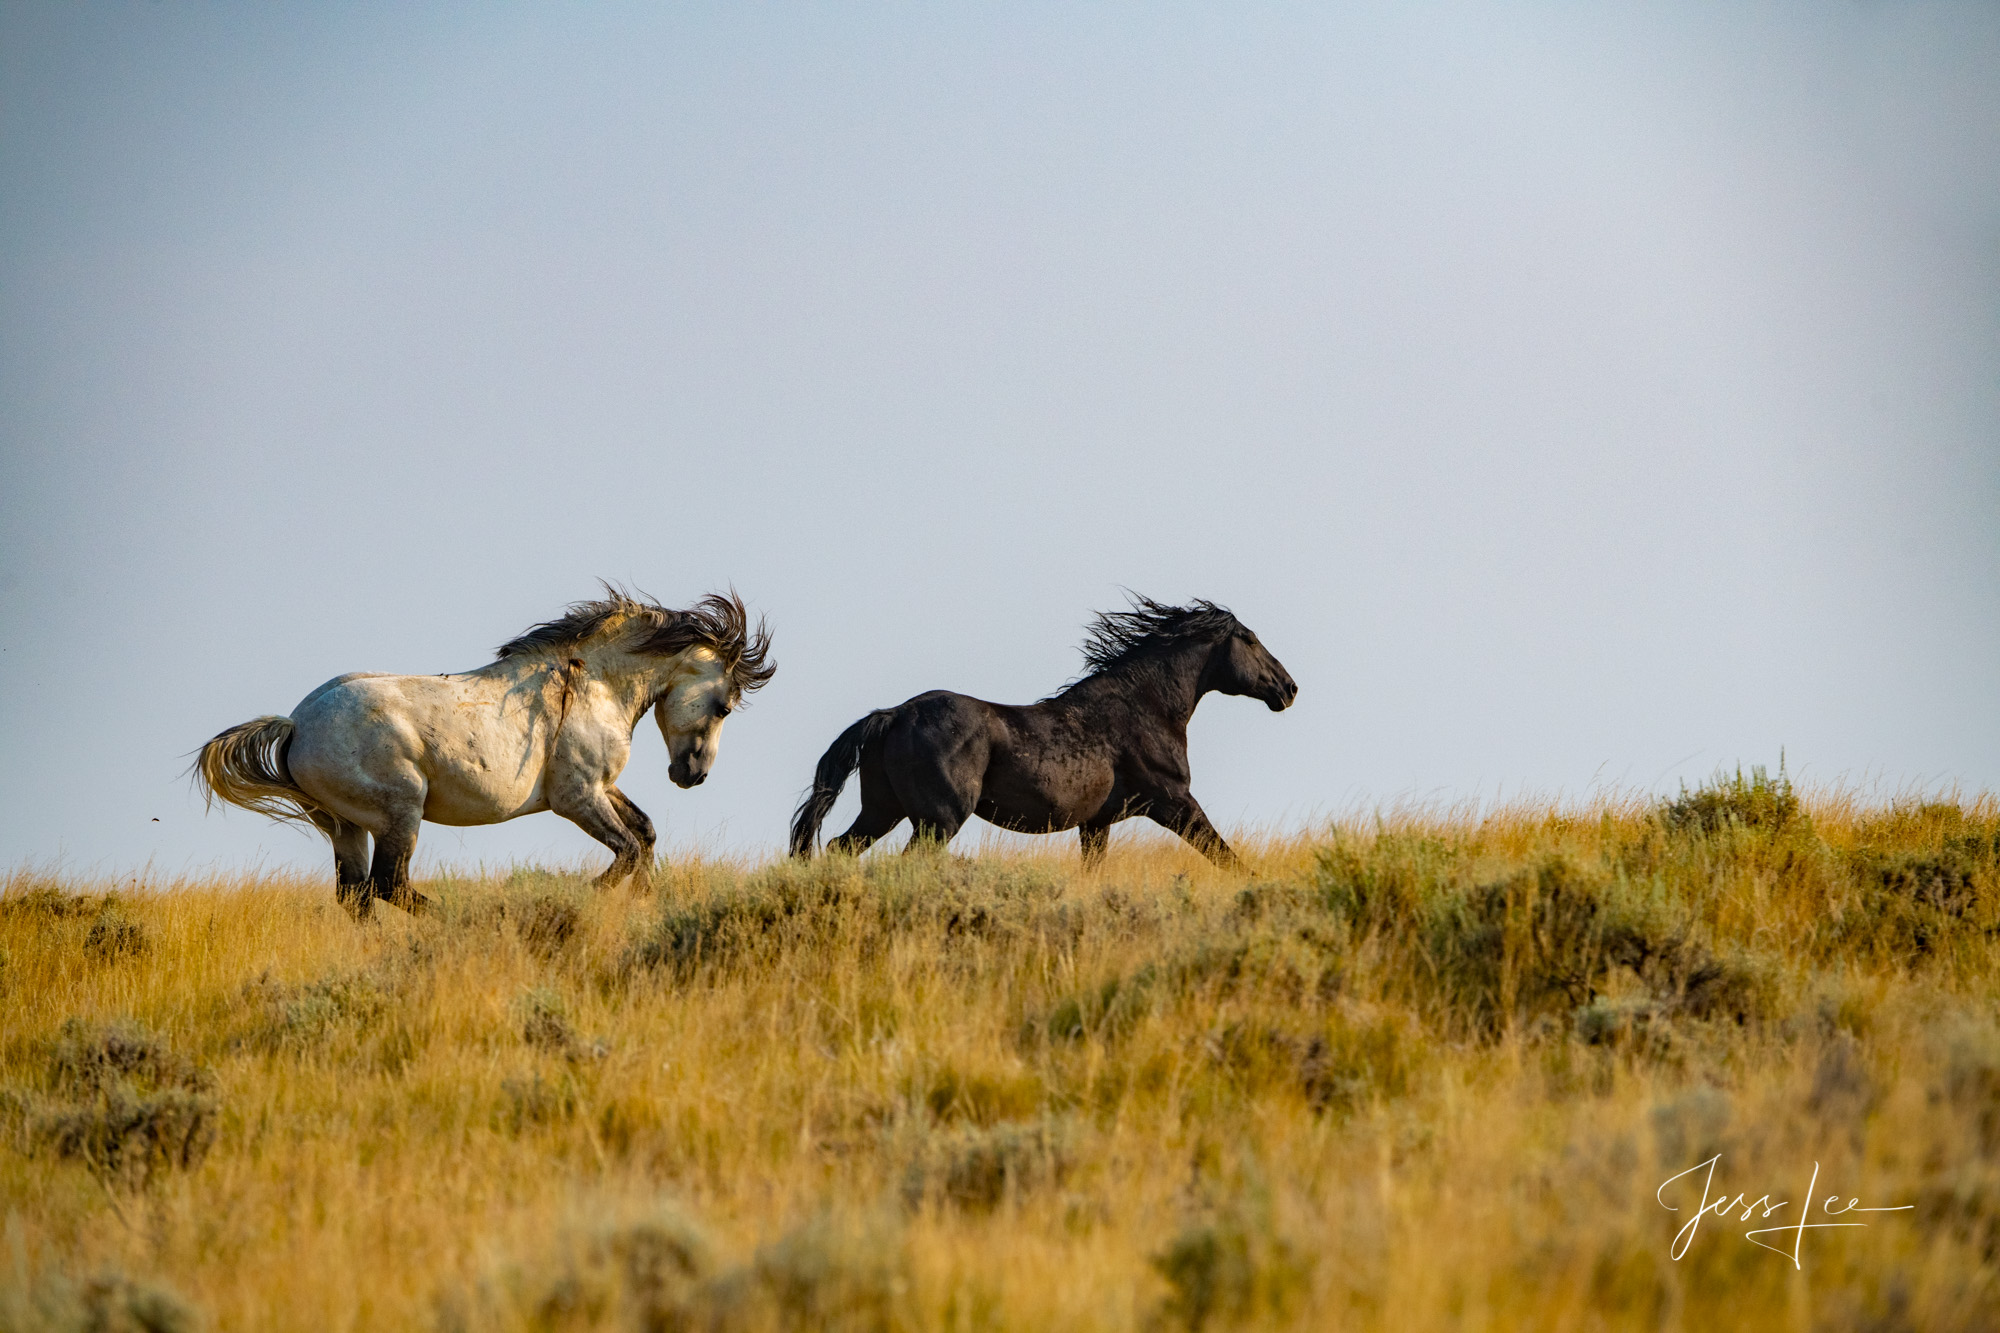 Wyoming Cowboys And Wild Horses Photography Workshop June 6 12 July 25 31 2021 Jess Lee Photos